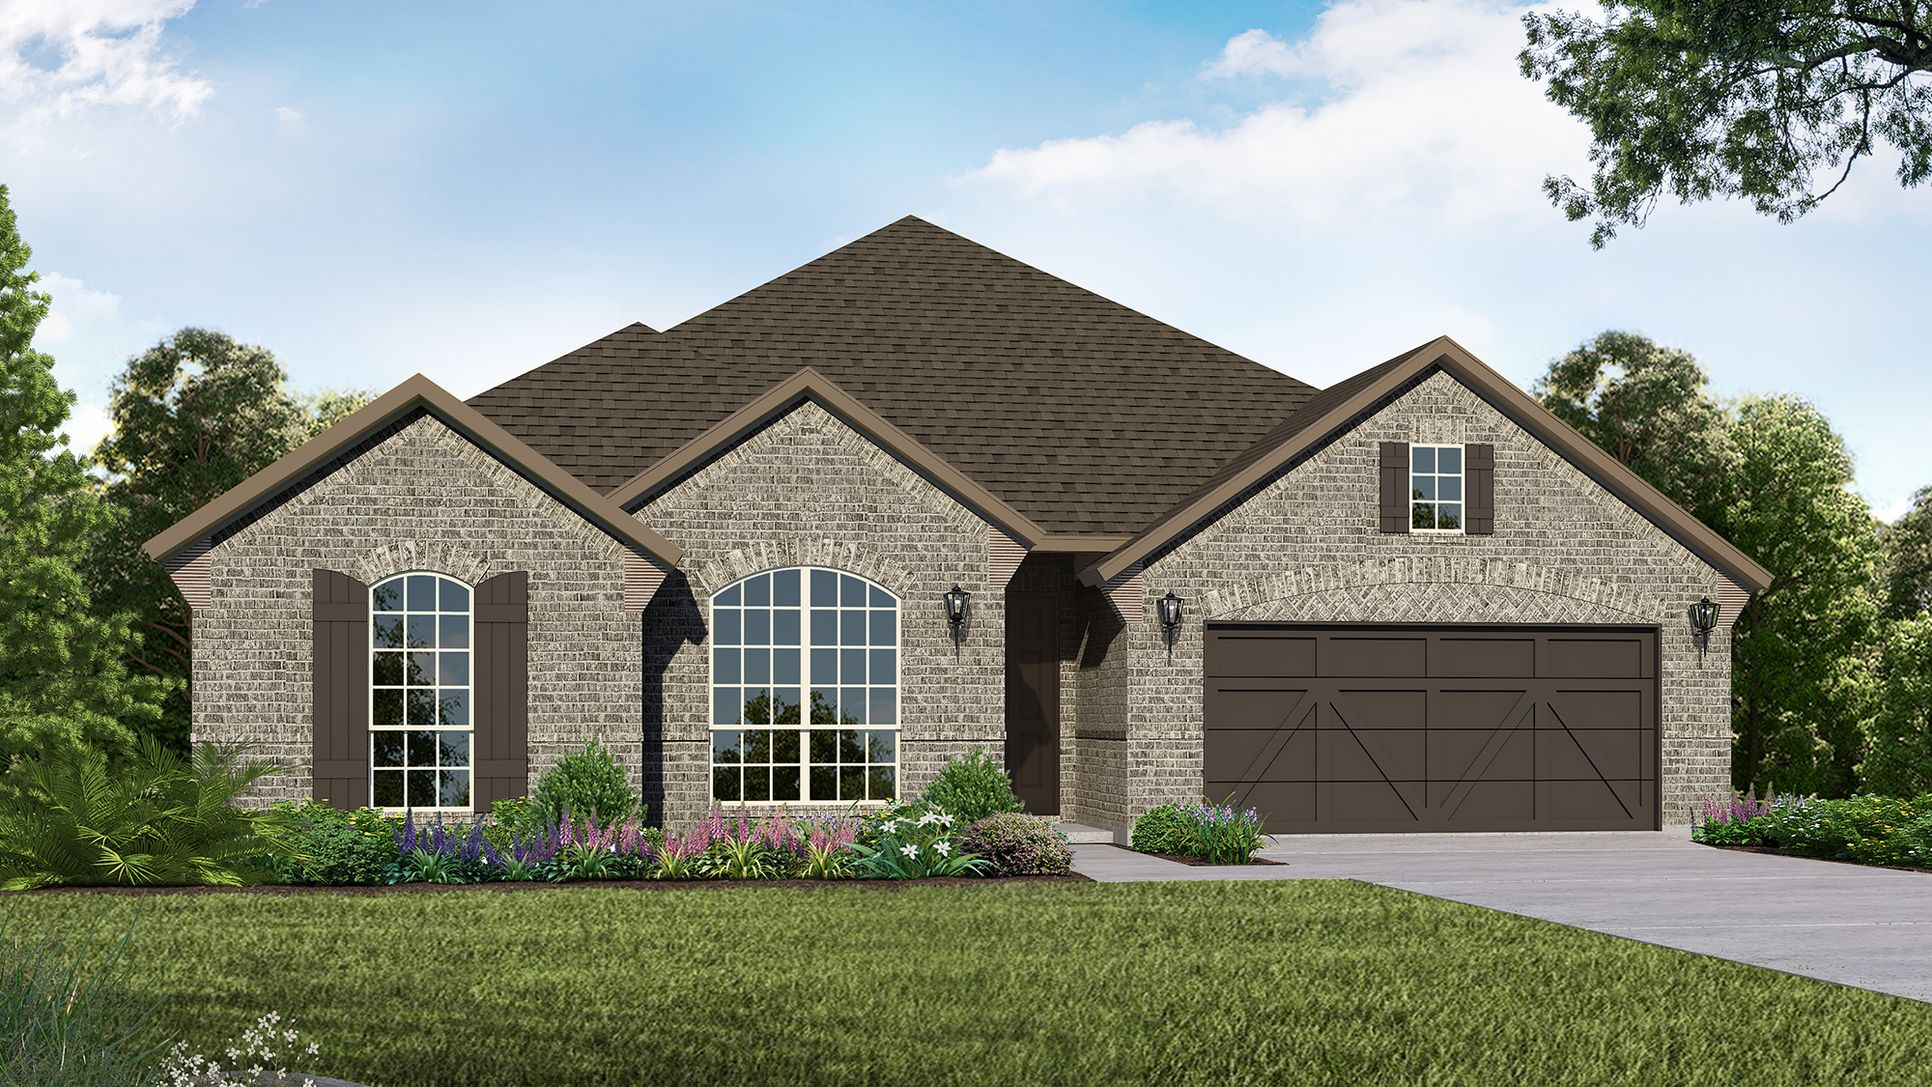 Exterior:Plan 1685 Elevation A by American Legend Homes